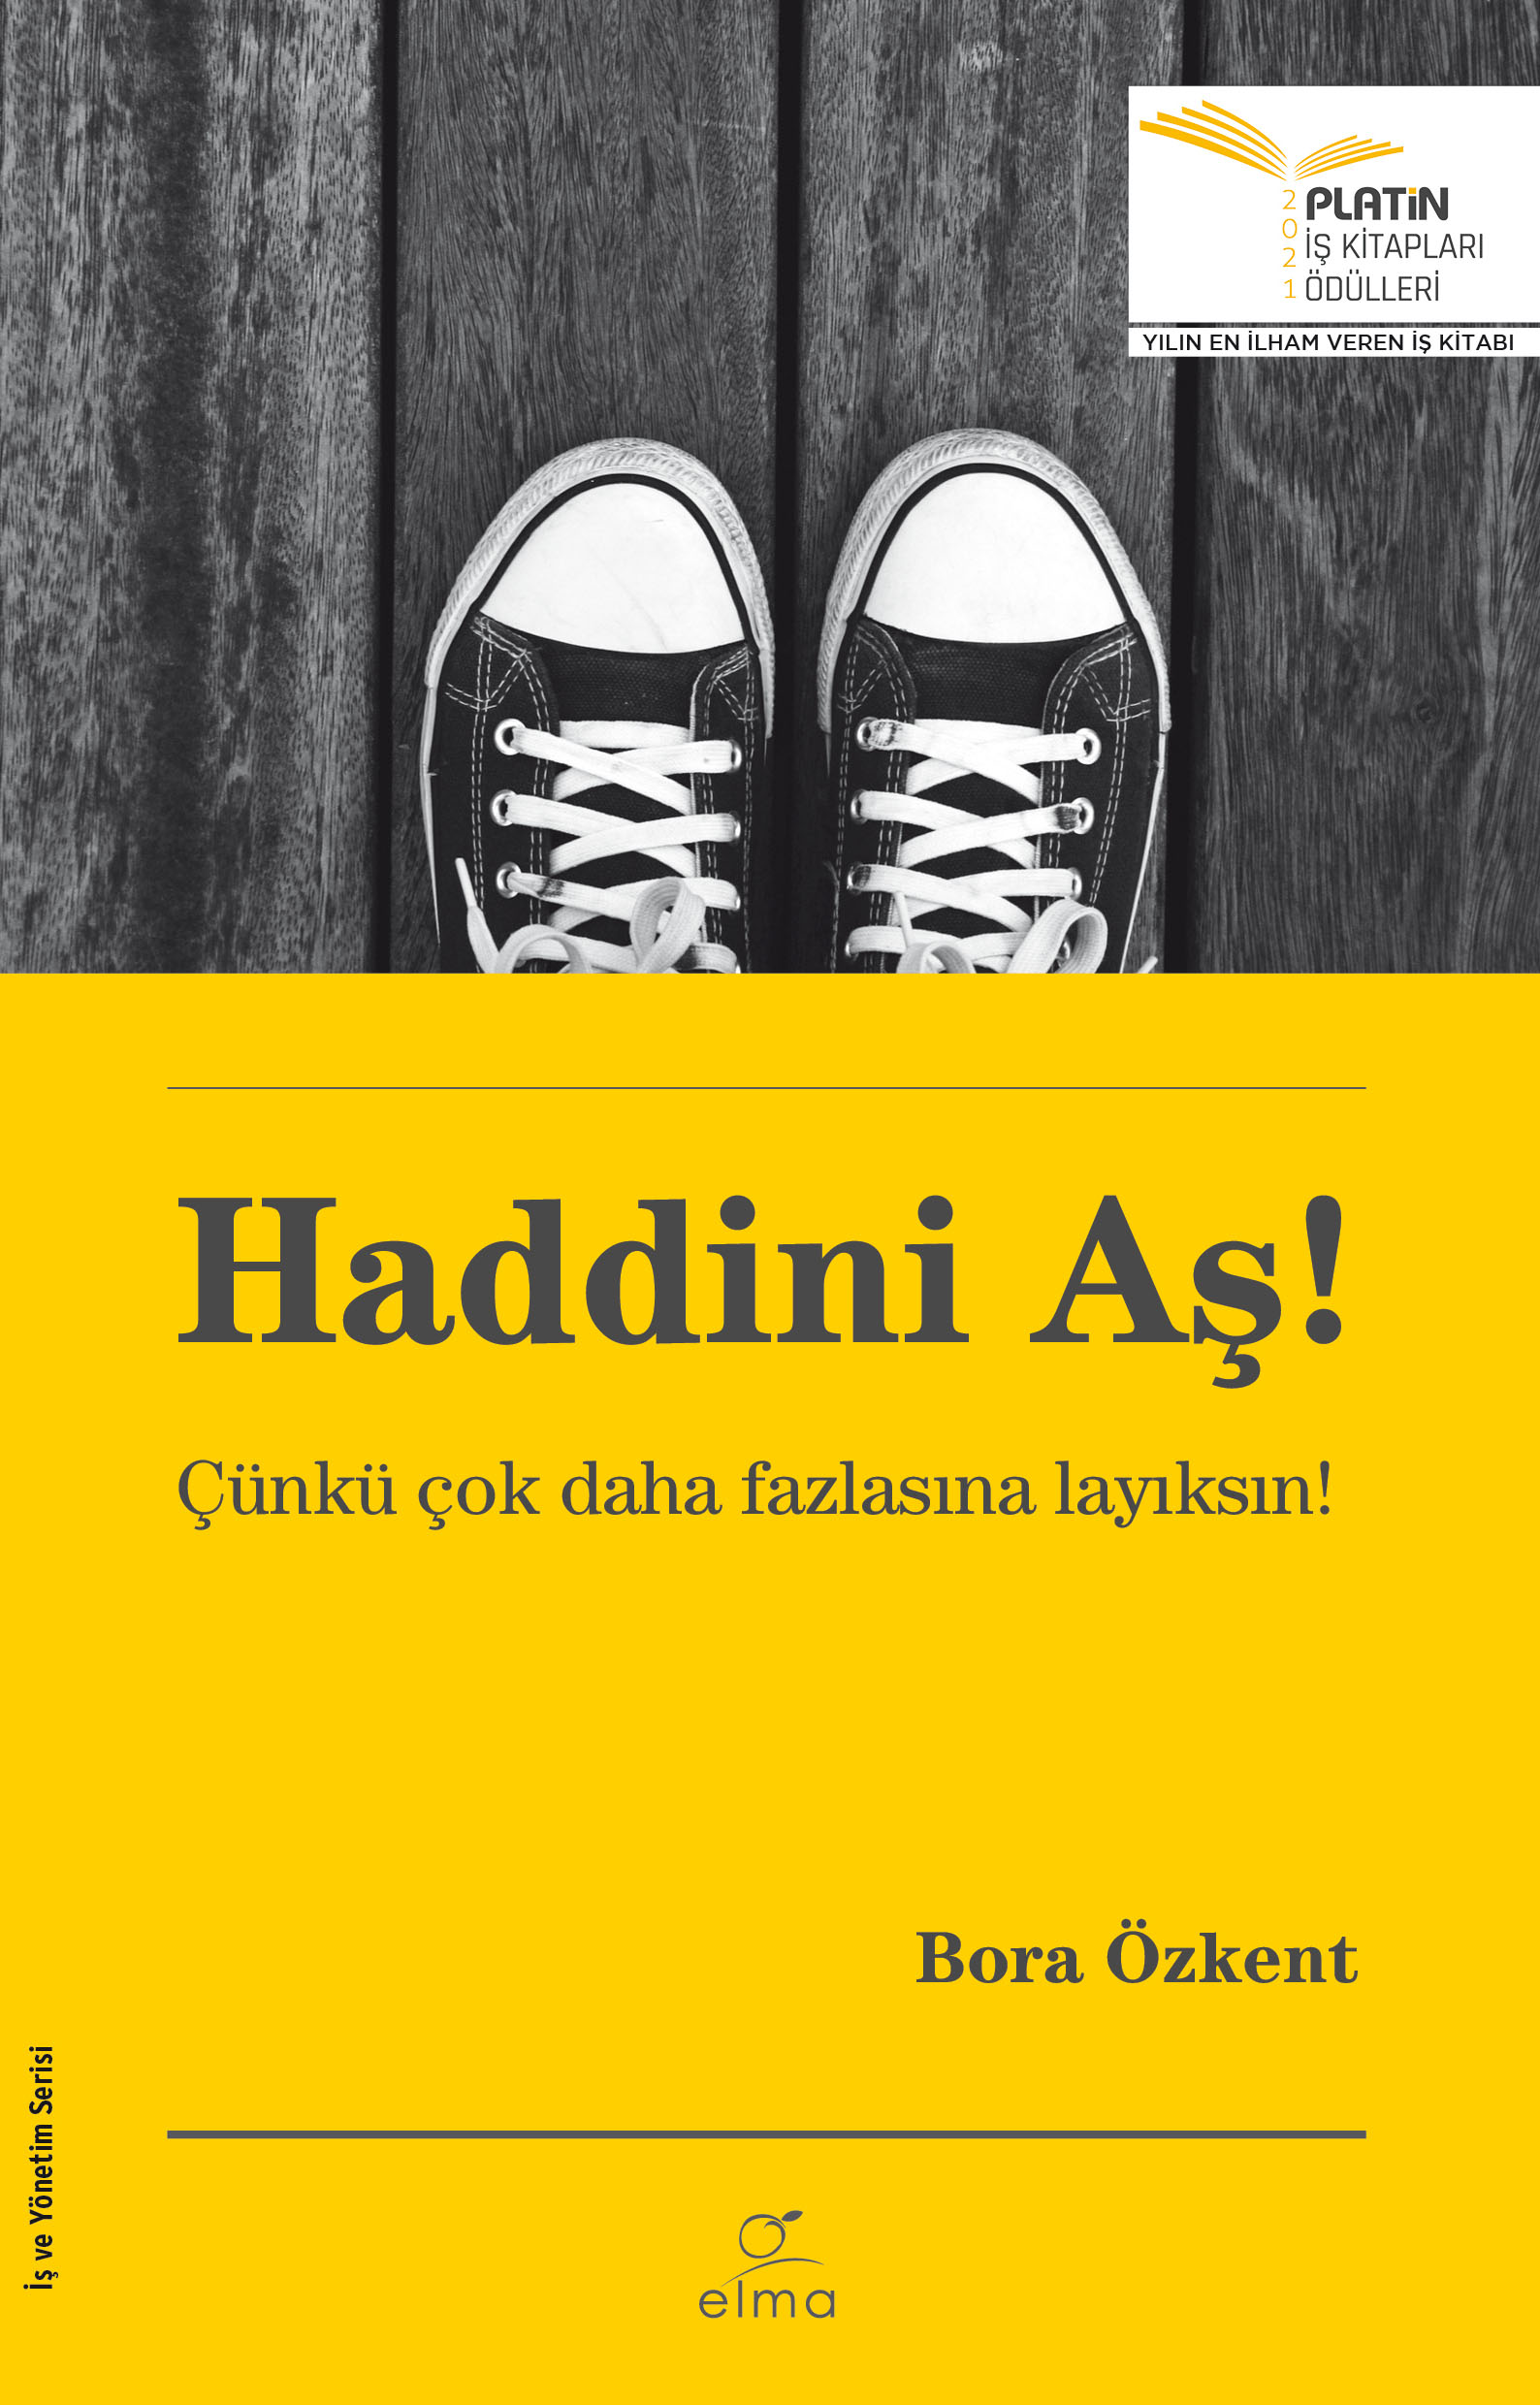 Haddini Aş!